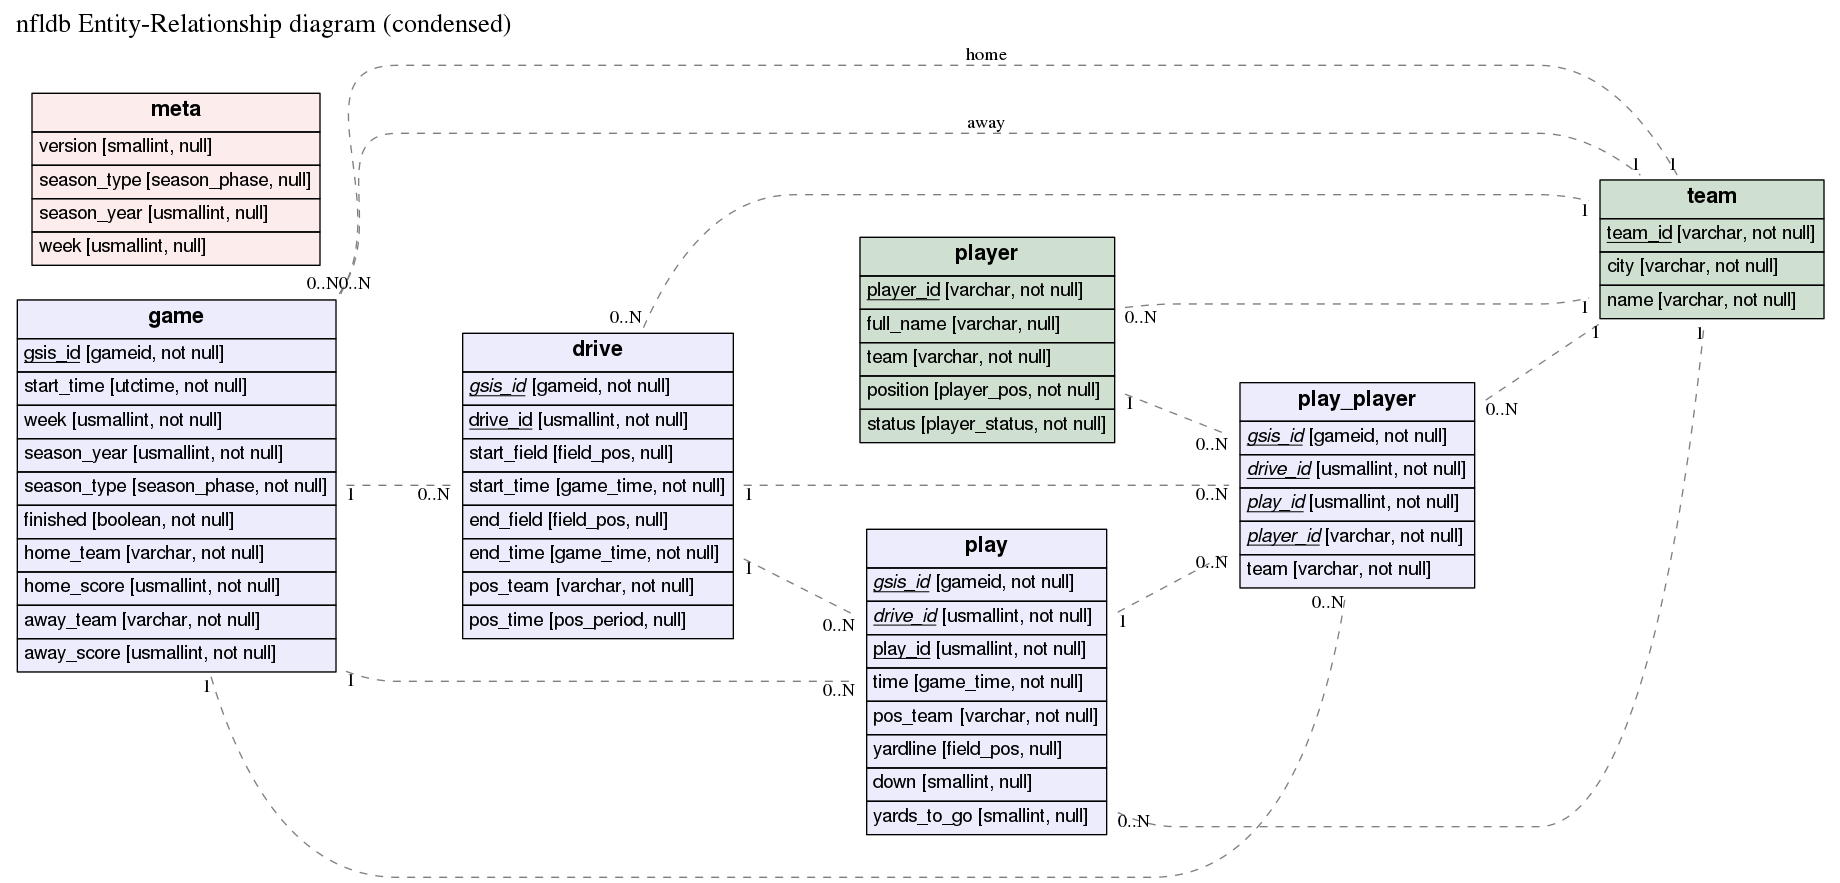 Github burntsushierd translates a plain text description of a er diagram for nfldb ccuart Images